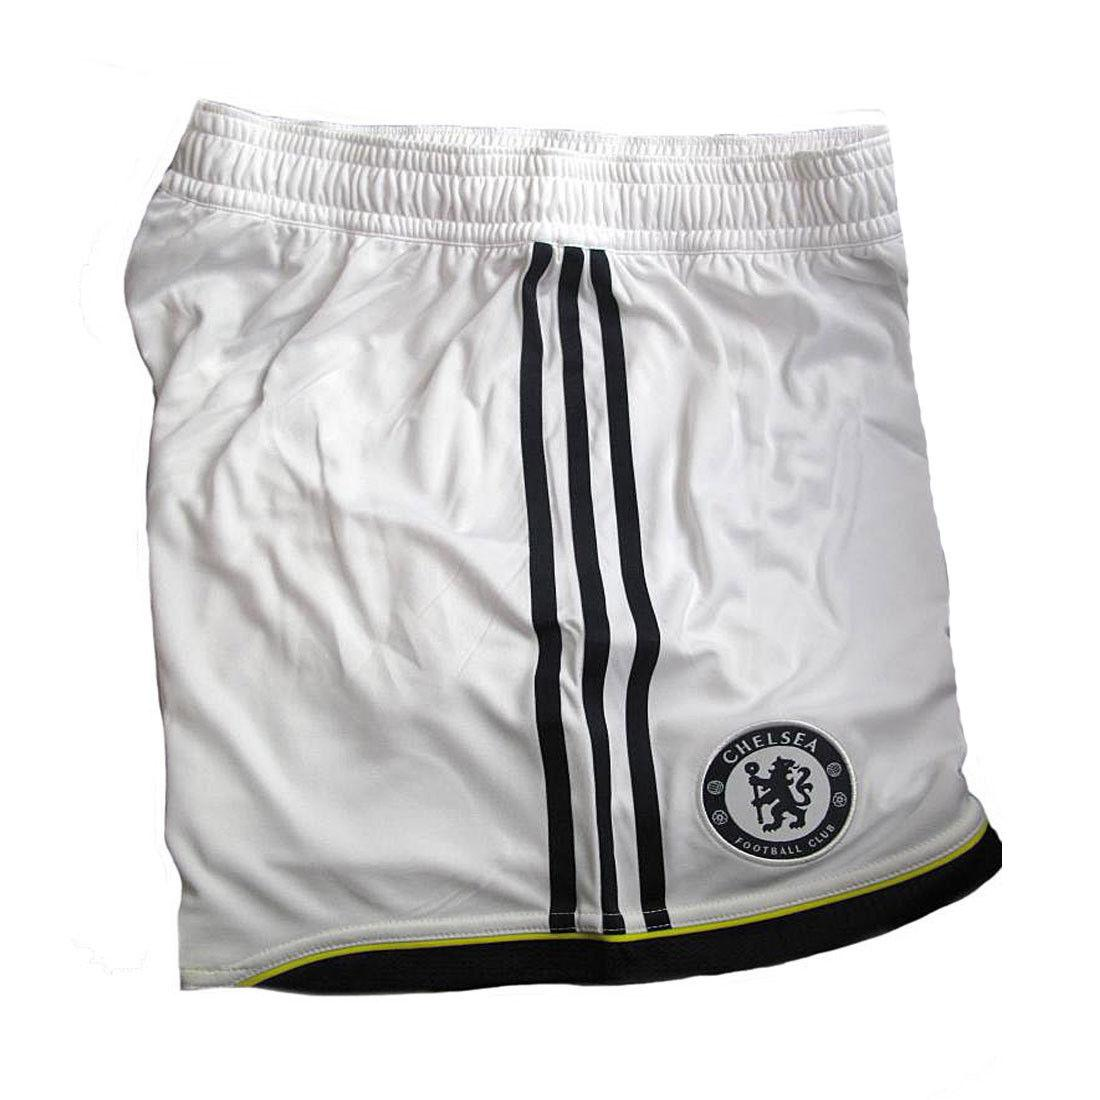 Chelsea FC Football Shorts Mens adidas White Player Issue 3rd 2010-12 Size  XL